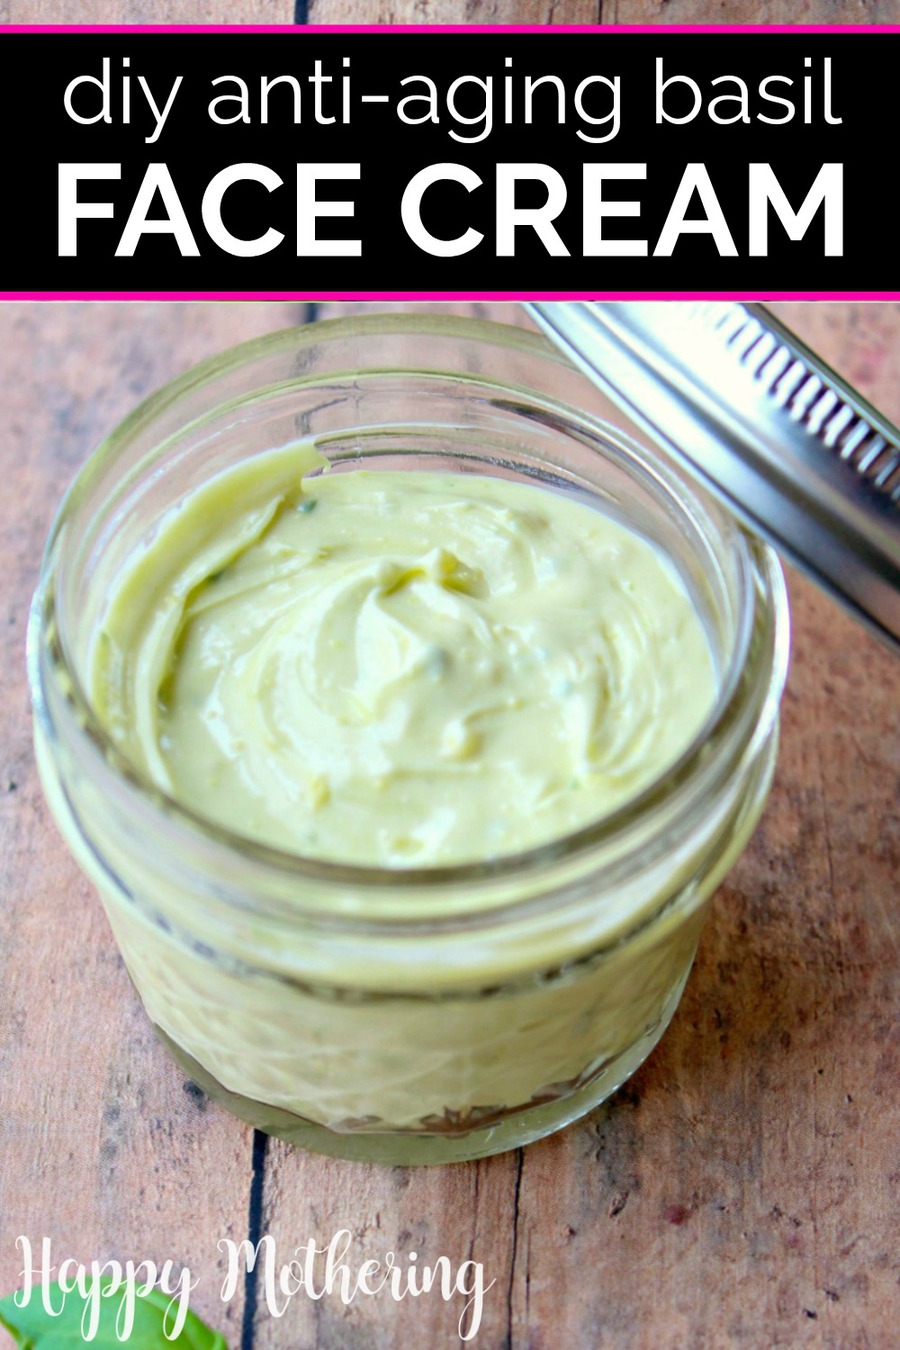 Homemade Anti-Aging Basil Face Cream